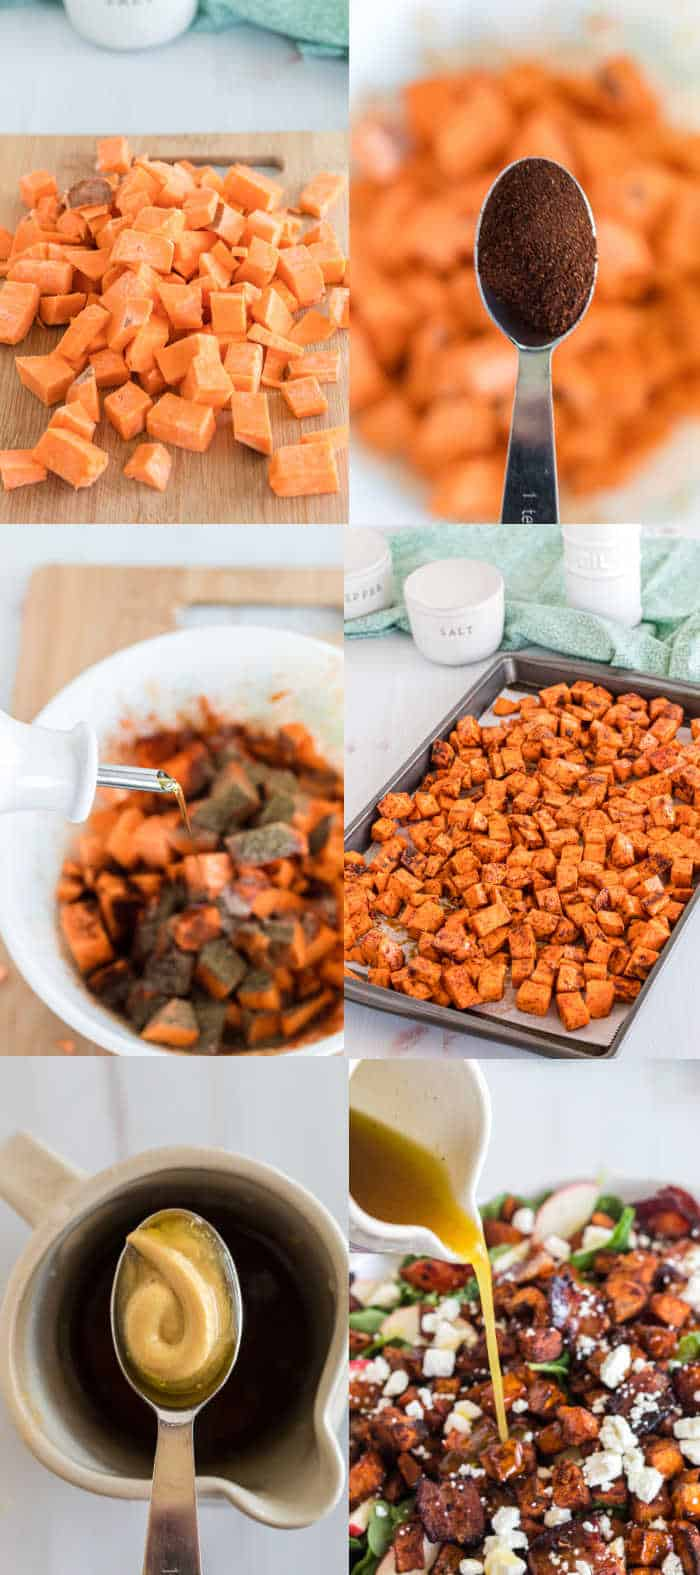 step by step of how to Make the salad. top left pic of sweet potato pre cooked, top right adding spices, middle left photo, adding olive oil to sweet potato, middle right sheet pan of sweet potato, bottom left adding more spices for salad dressing, bottom right pic of dressing being poured on the salad